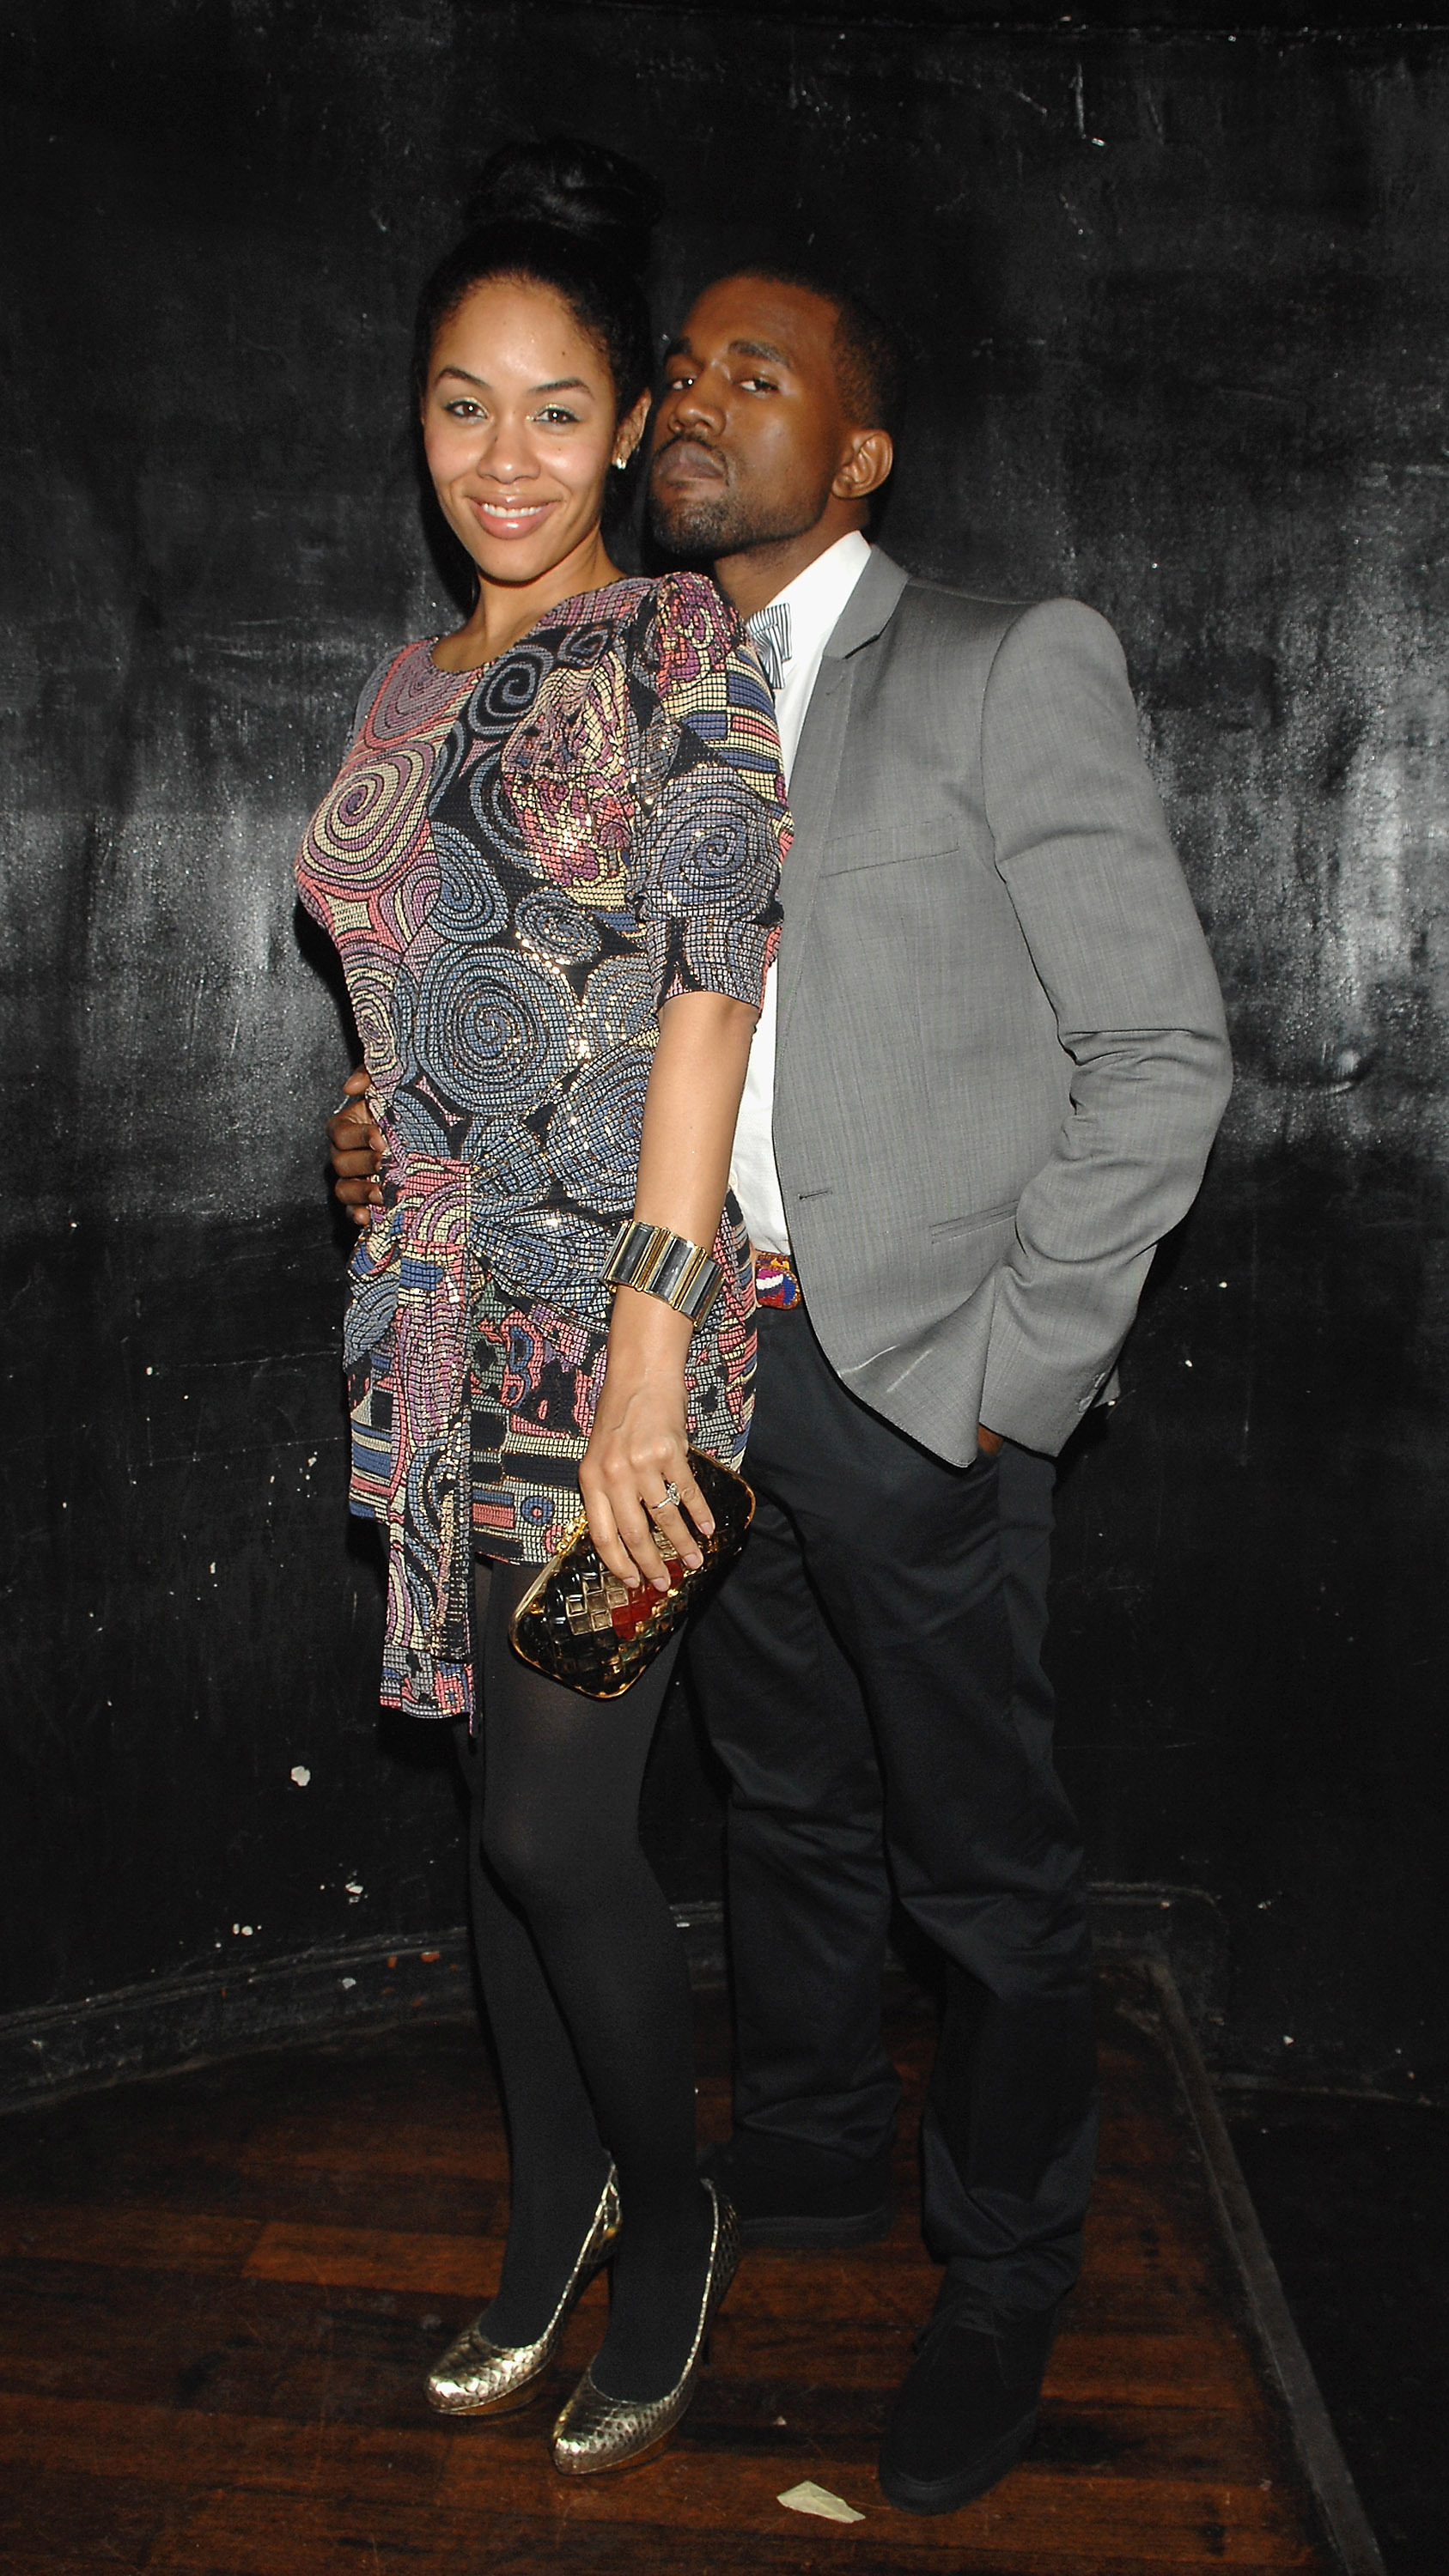 Alexis Pfeiffer and Kanye West attend New York New York in Paris for the Grandlifenyc.com Opening Ceremony presented by Derek Blasberg at the Paris Paris in Paris, France on March 2, 2008.